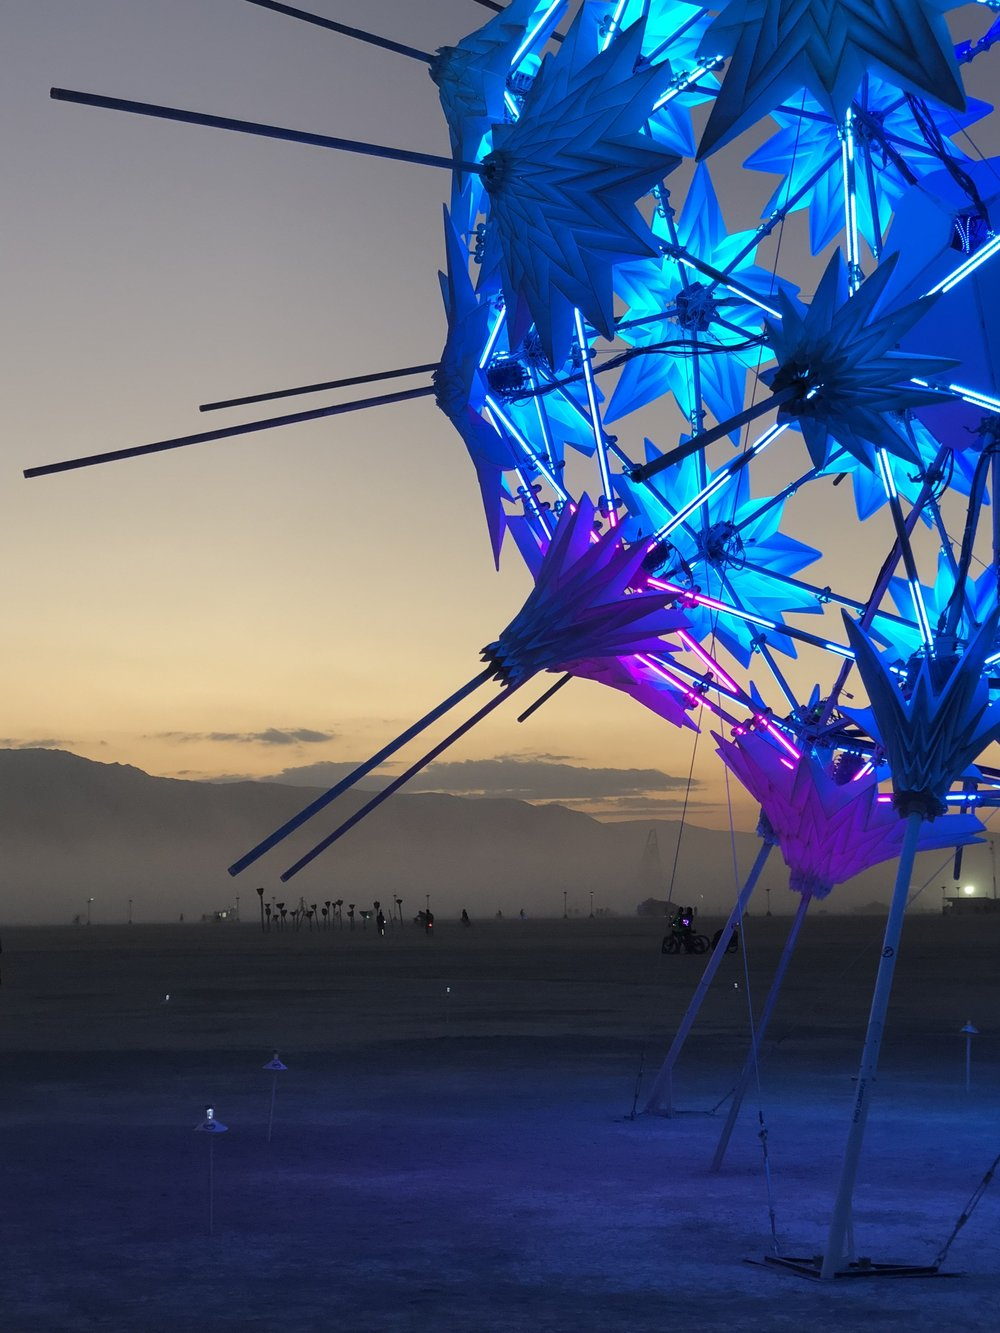 RadiaLumia   (2018) A geodesic sphere, five-stories tall, and covered with a breathing skin of origami shells and radiant spikes. The shells open and close in response to visitors' interactions inside. RadiaLumia premiered at Burning Man 2018.   Photograph by Steve Moore   [ See more ]